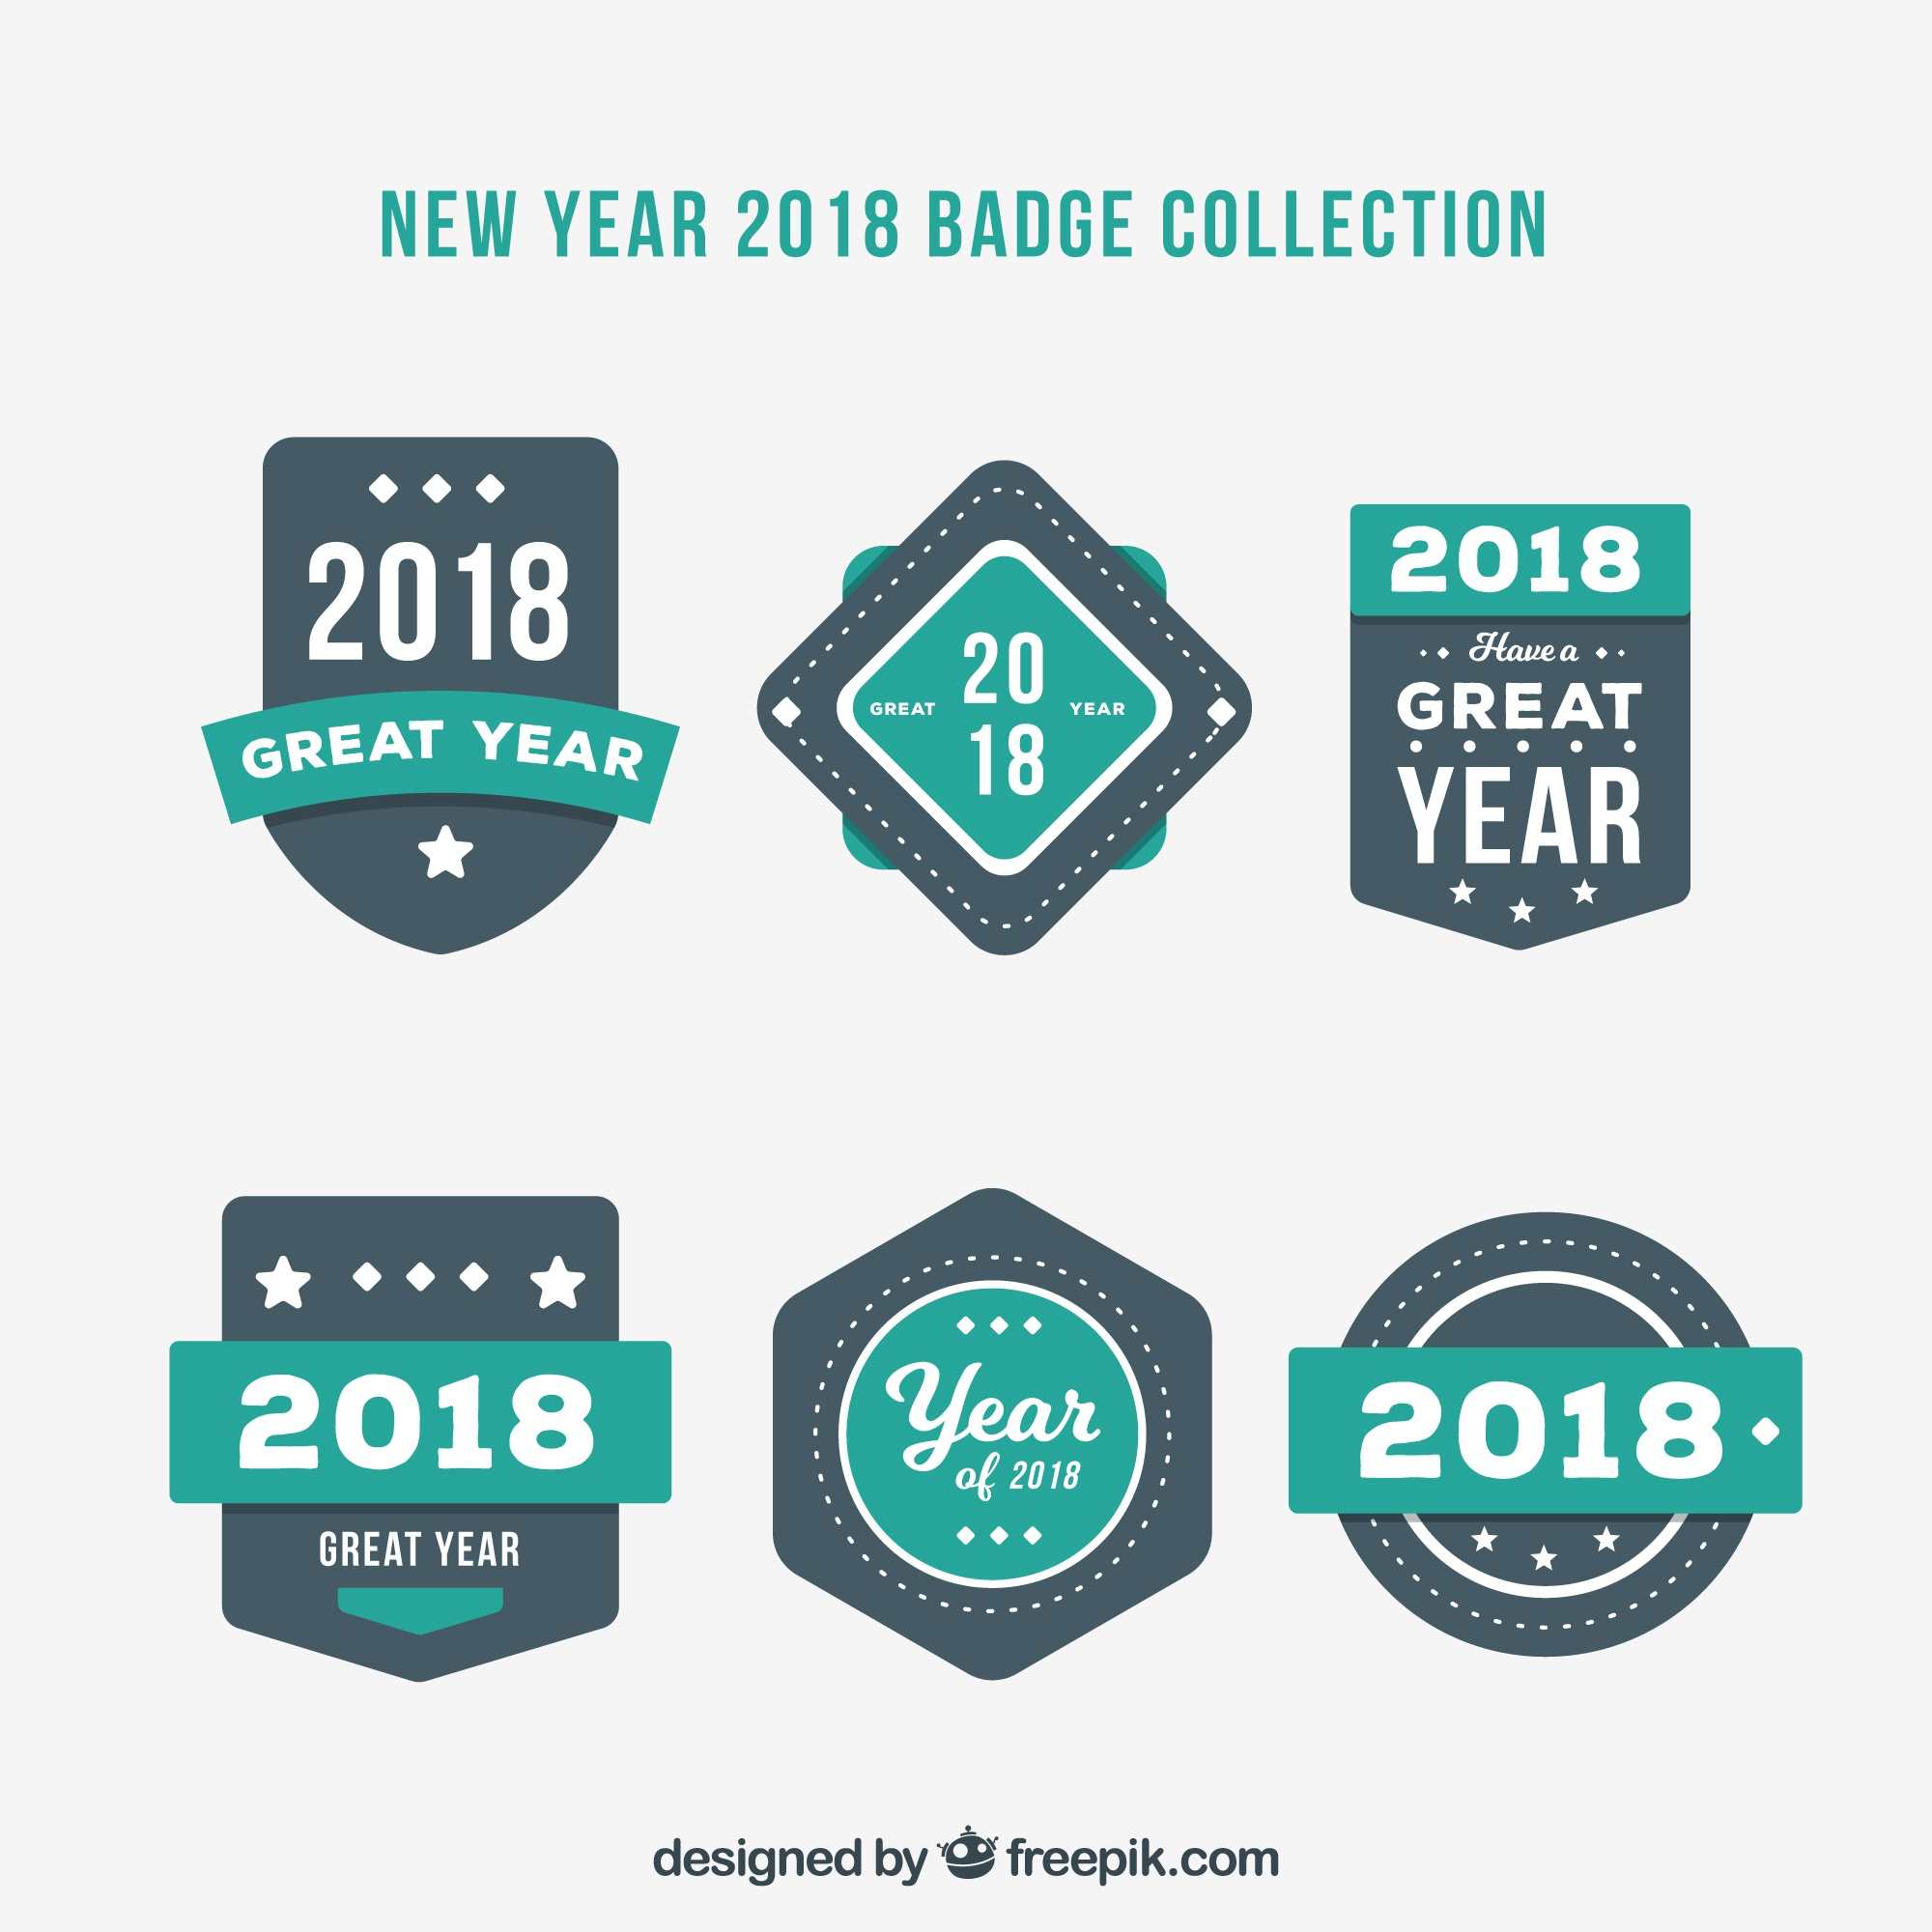 Collection of new year badges 2018